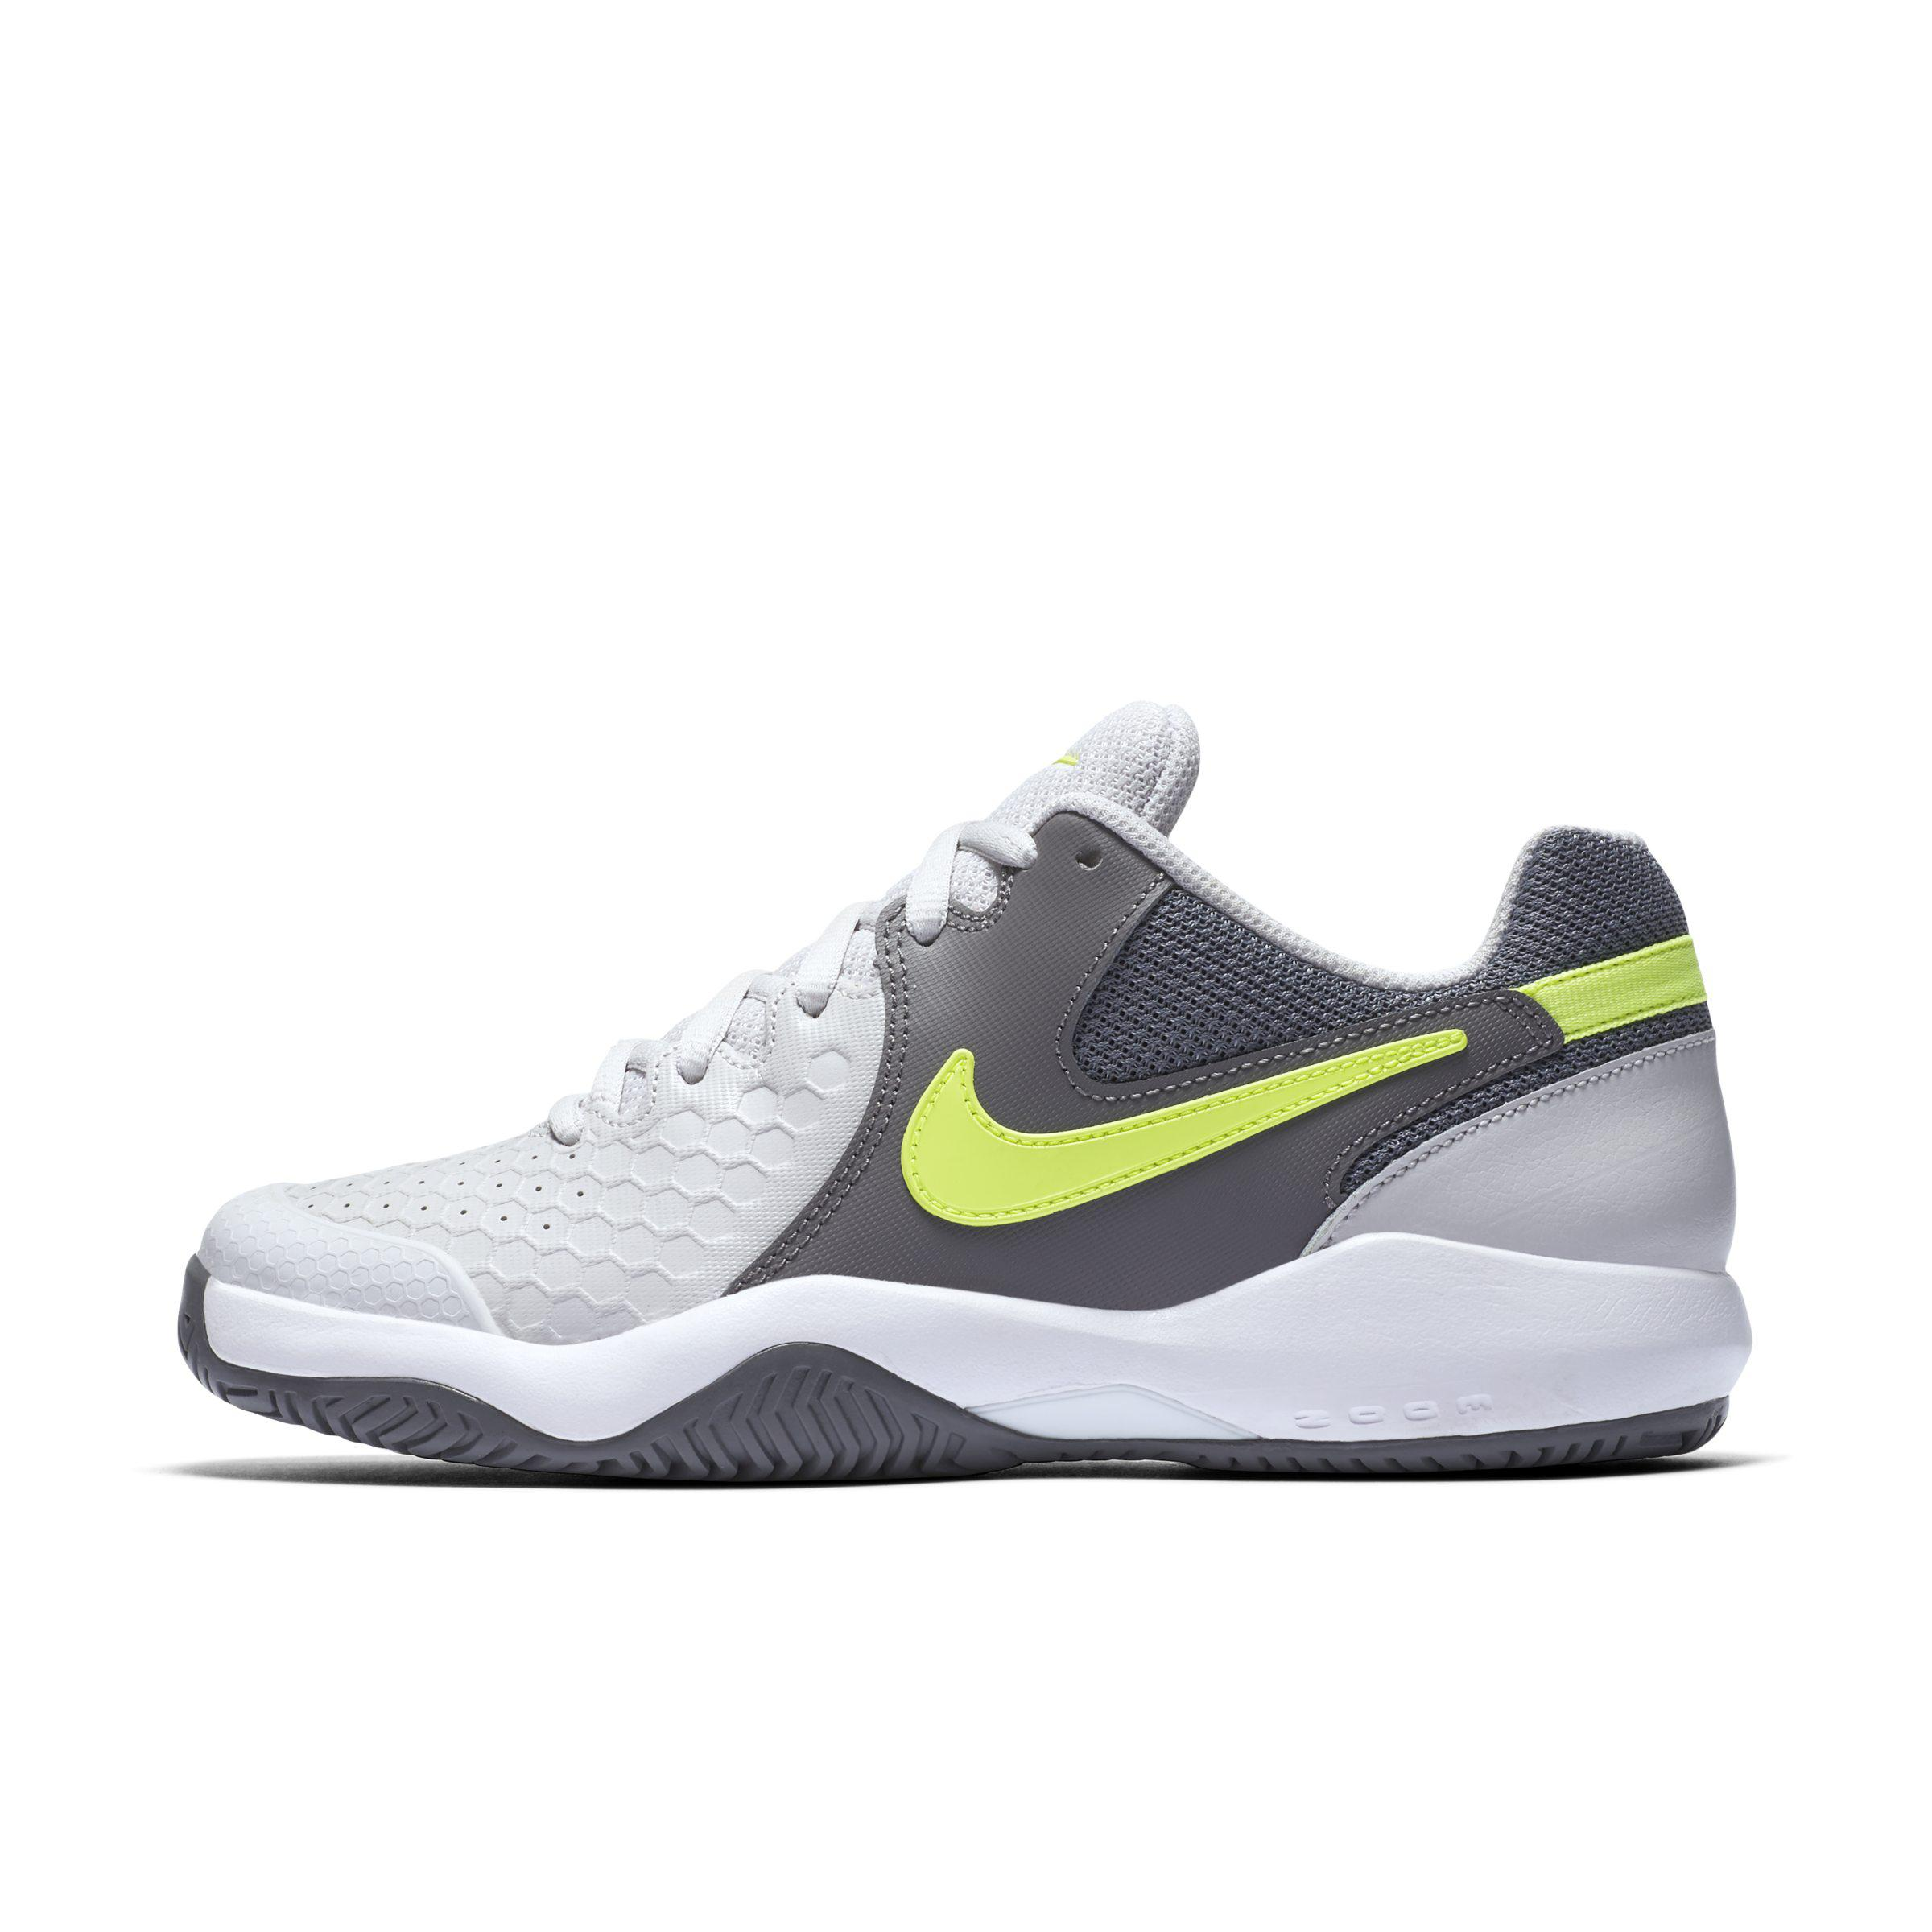 a6e0f2710d40 Nike Court Air Zoom Resistance Hard Court Tennis Shoe in Gray - Lyst